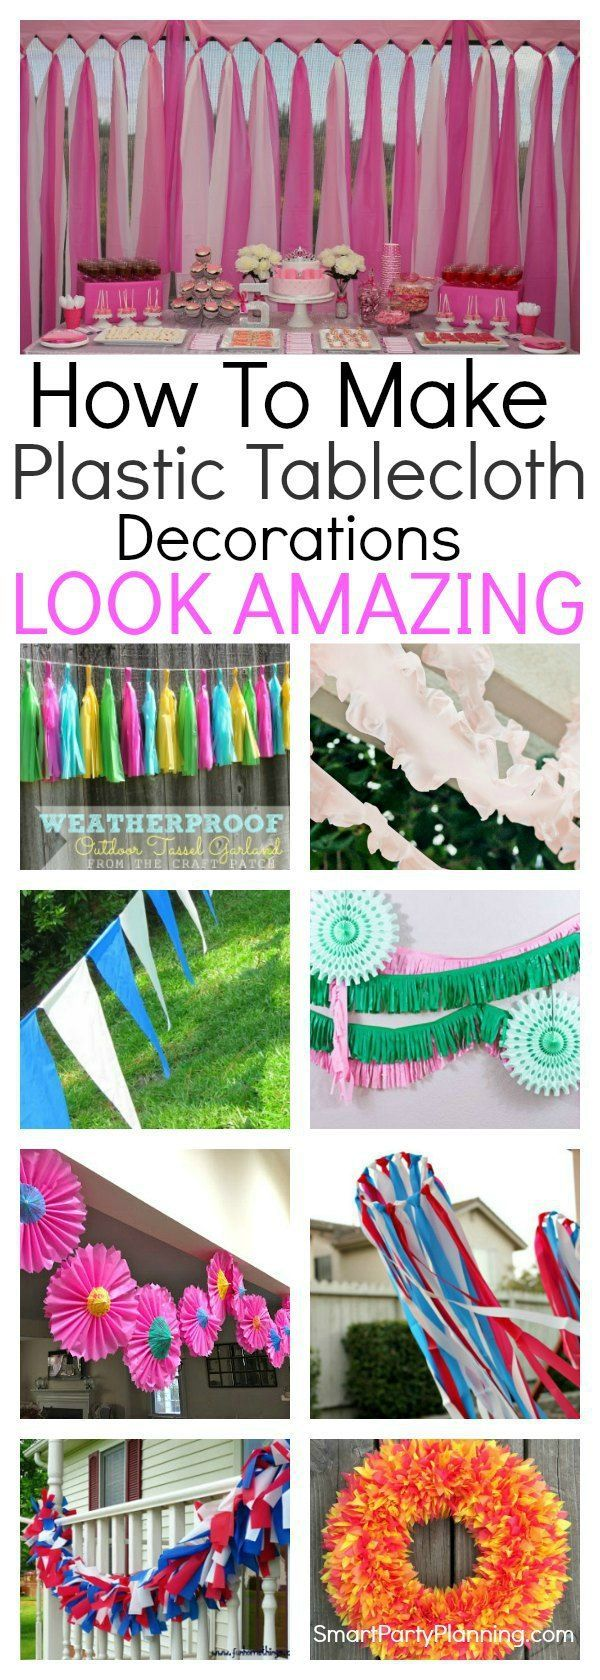 These 12 easy plastic tablecloth decorations will make decorating for parties a breeze. With all the items easily purchased from dollar stores, they are not only effective and easy to make, but really cheap too. Whether you want to make a photo booth backdrop design, streamers or simply jazz up table runners, all the party ideas are here for you. Party decoration could not be easier. #Decoration #Party #Easy